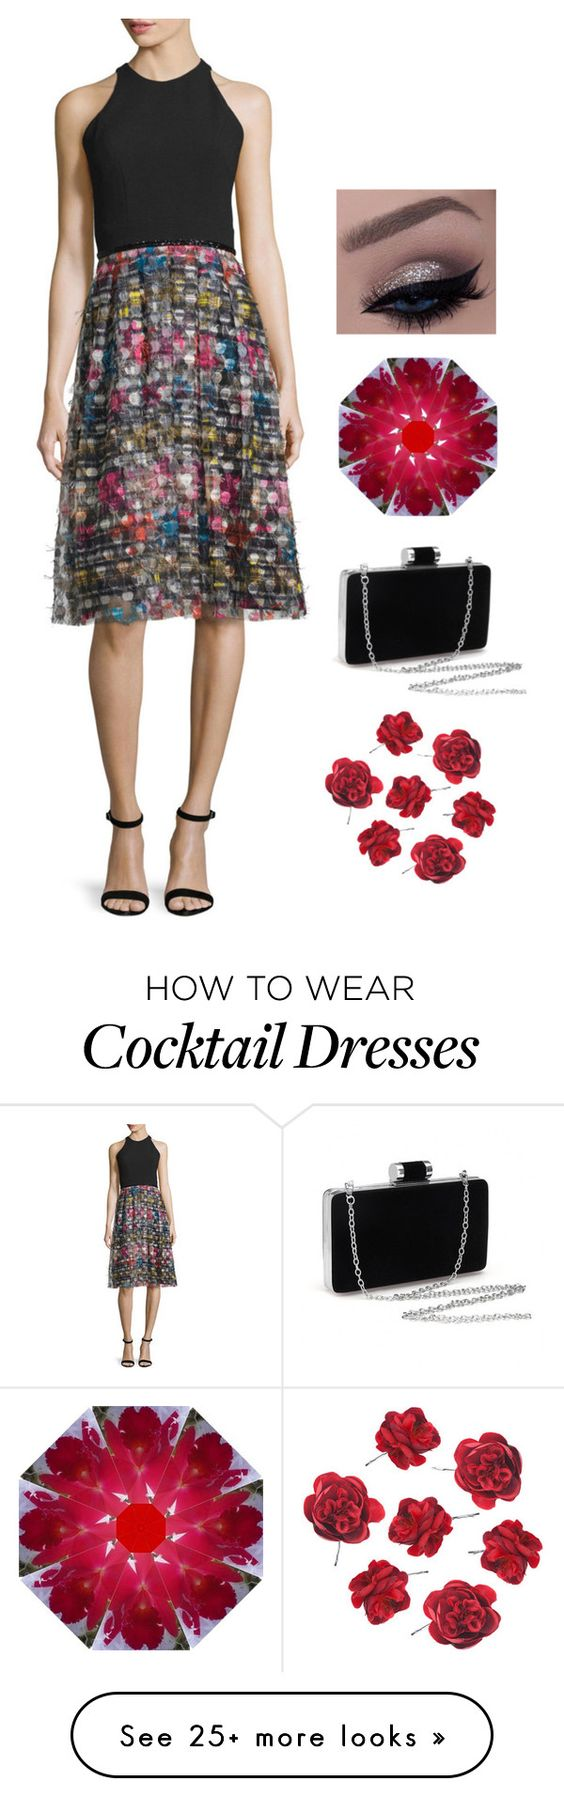 """Evening wear for when you're tired of all black"" by northcoastcottagejewelry on Polyvore featuring Carmen Marc Valvo"